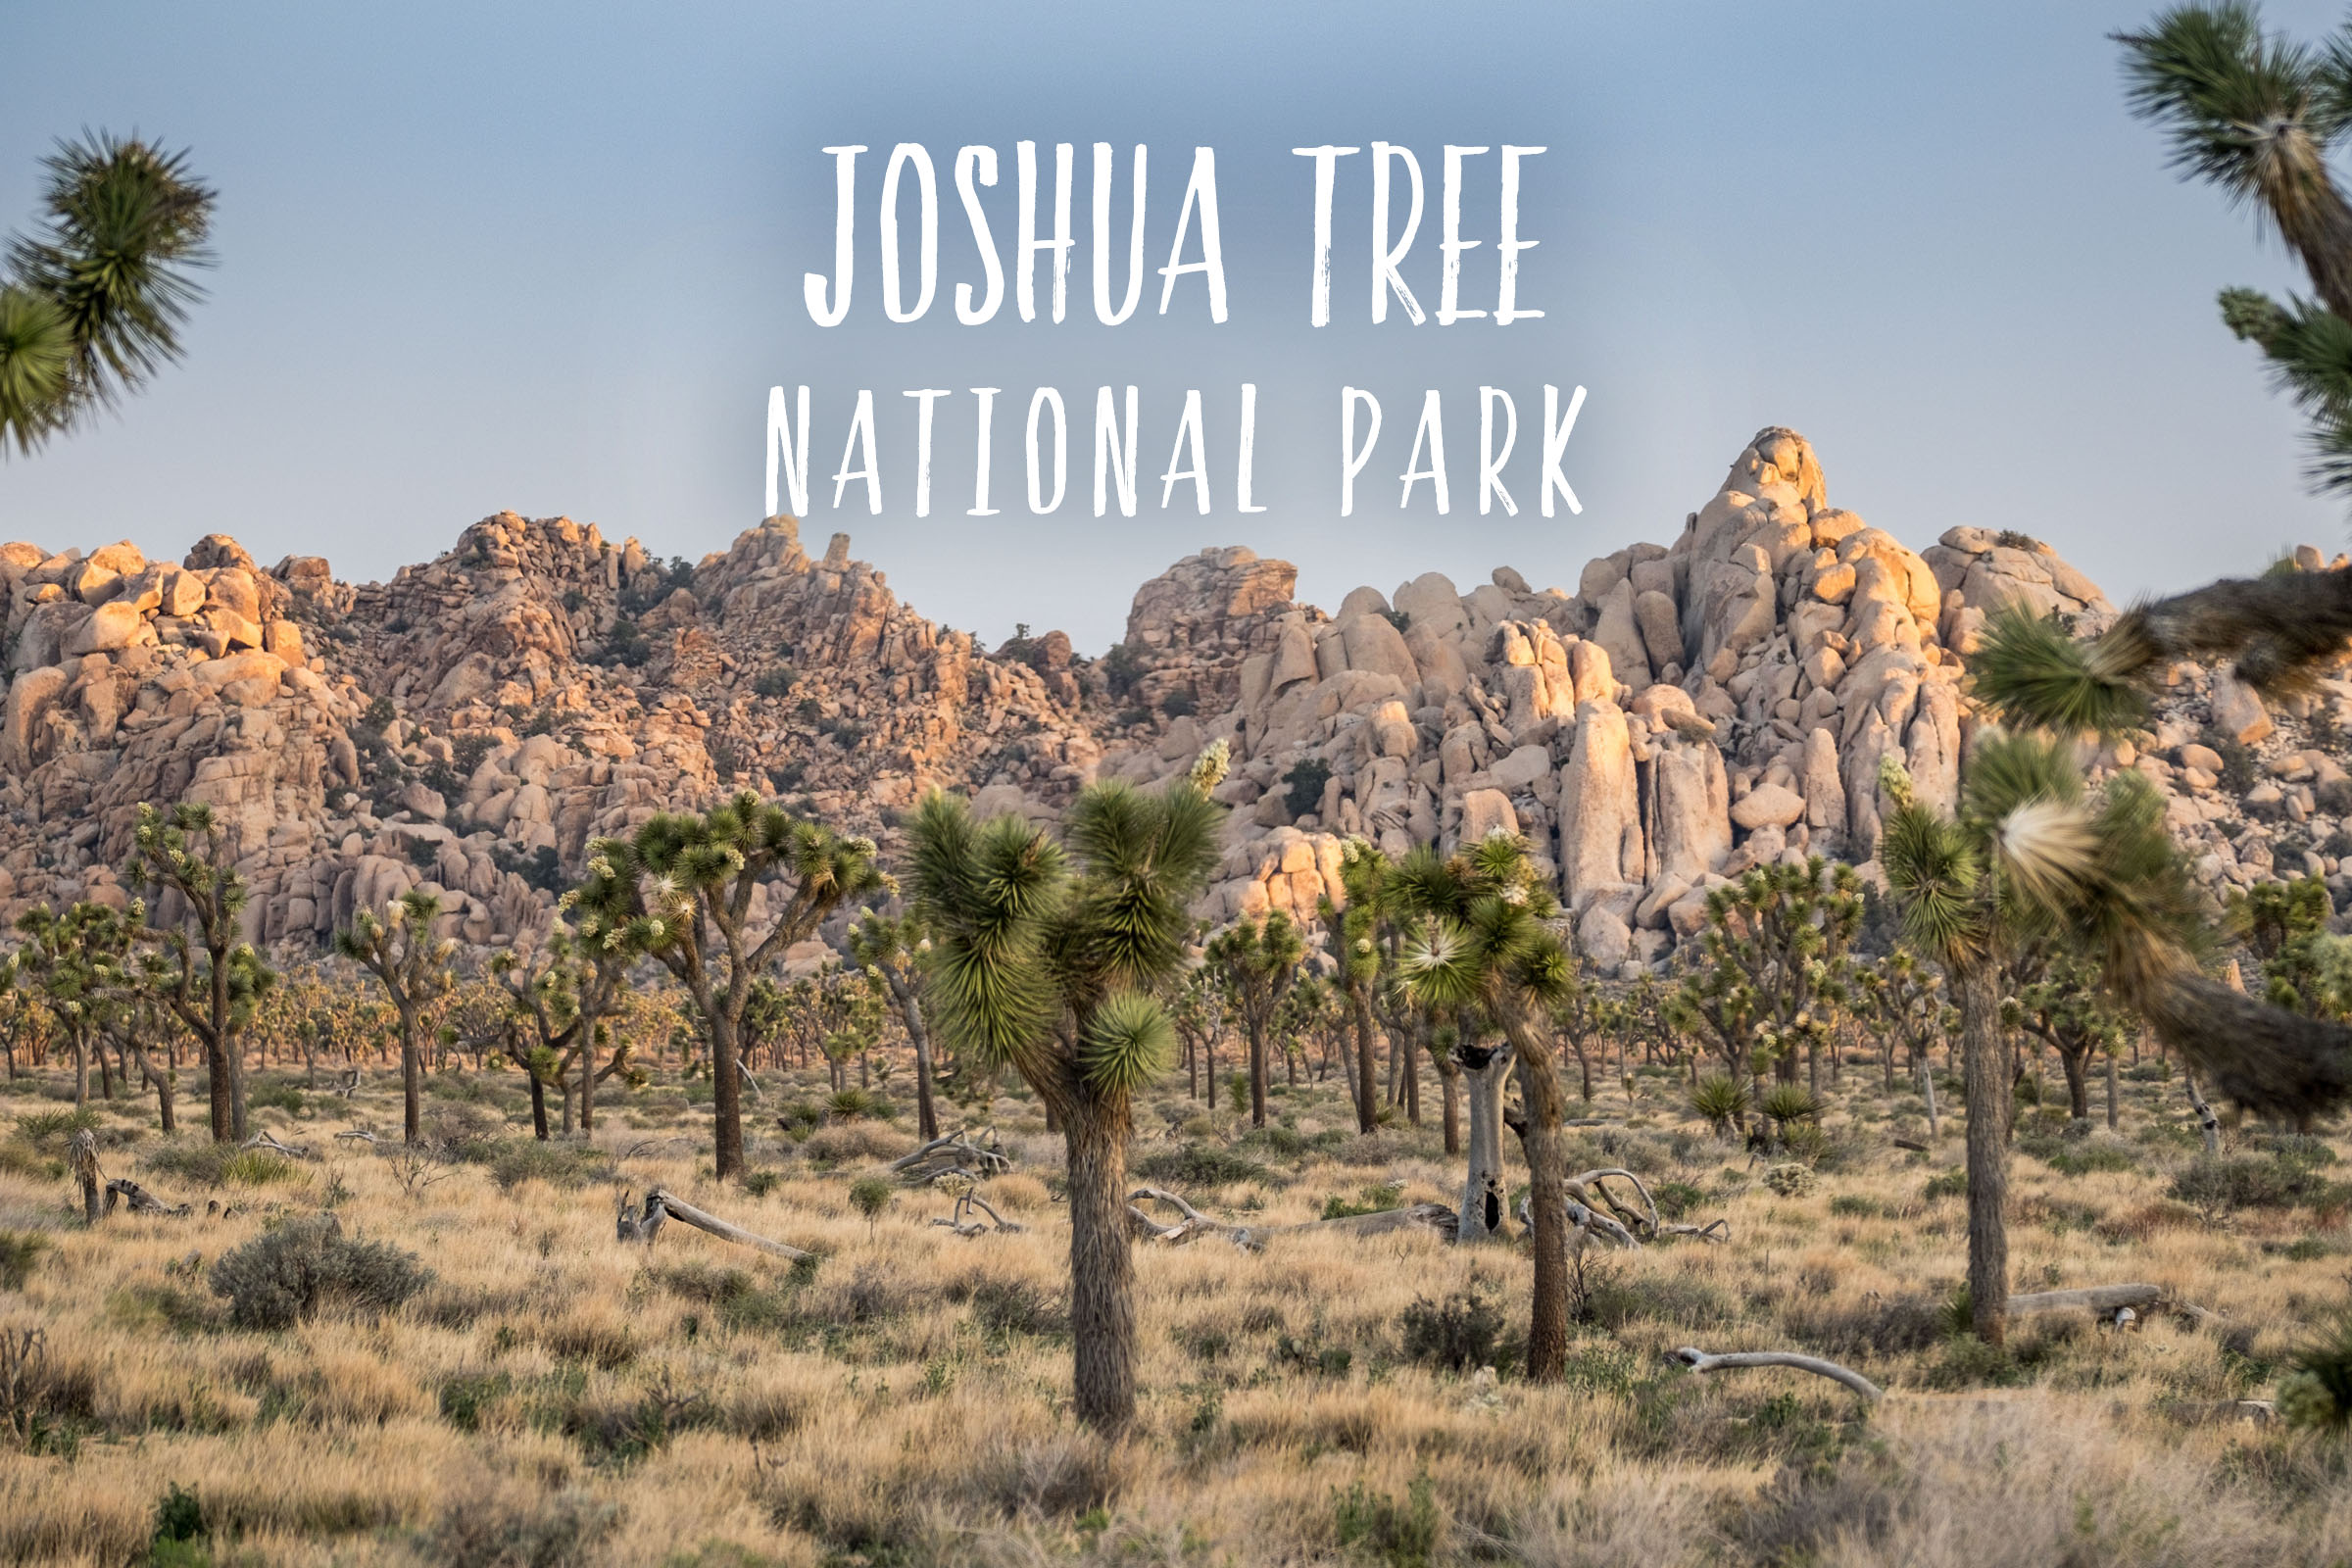 59in52_np-page_joshua-tree.jpg